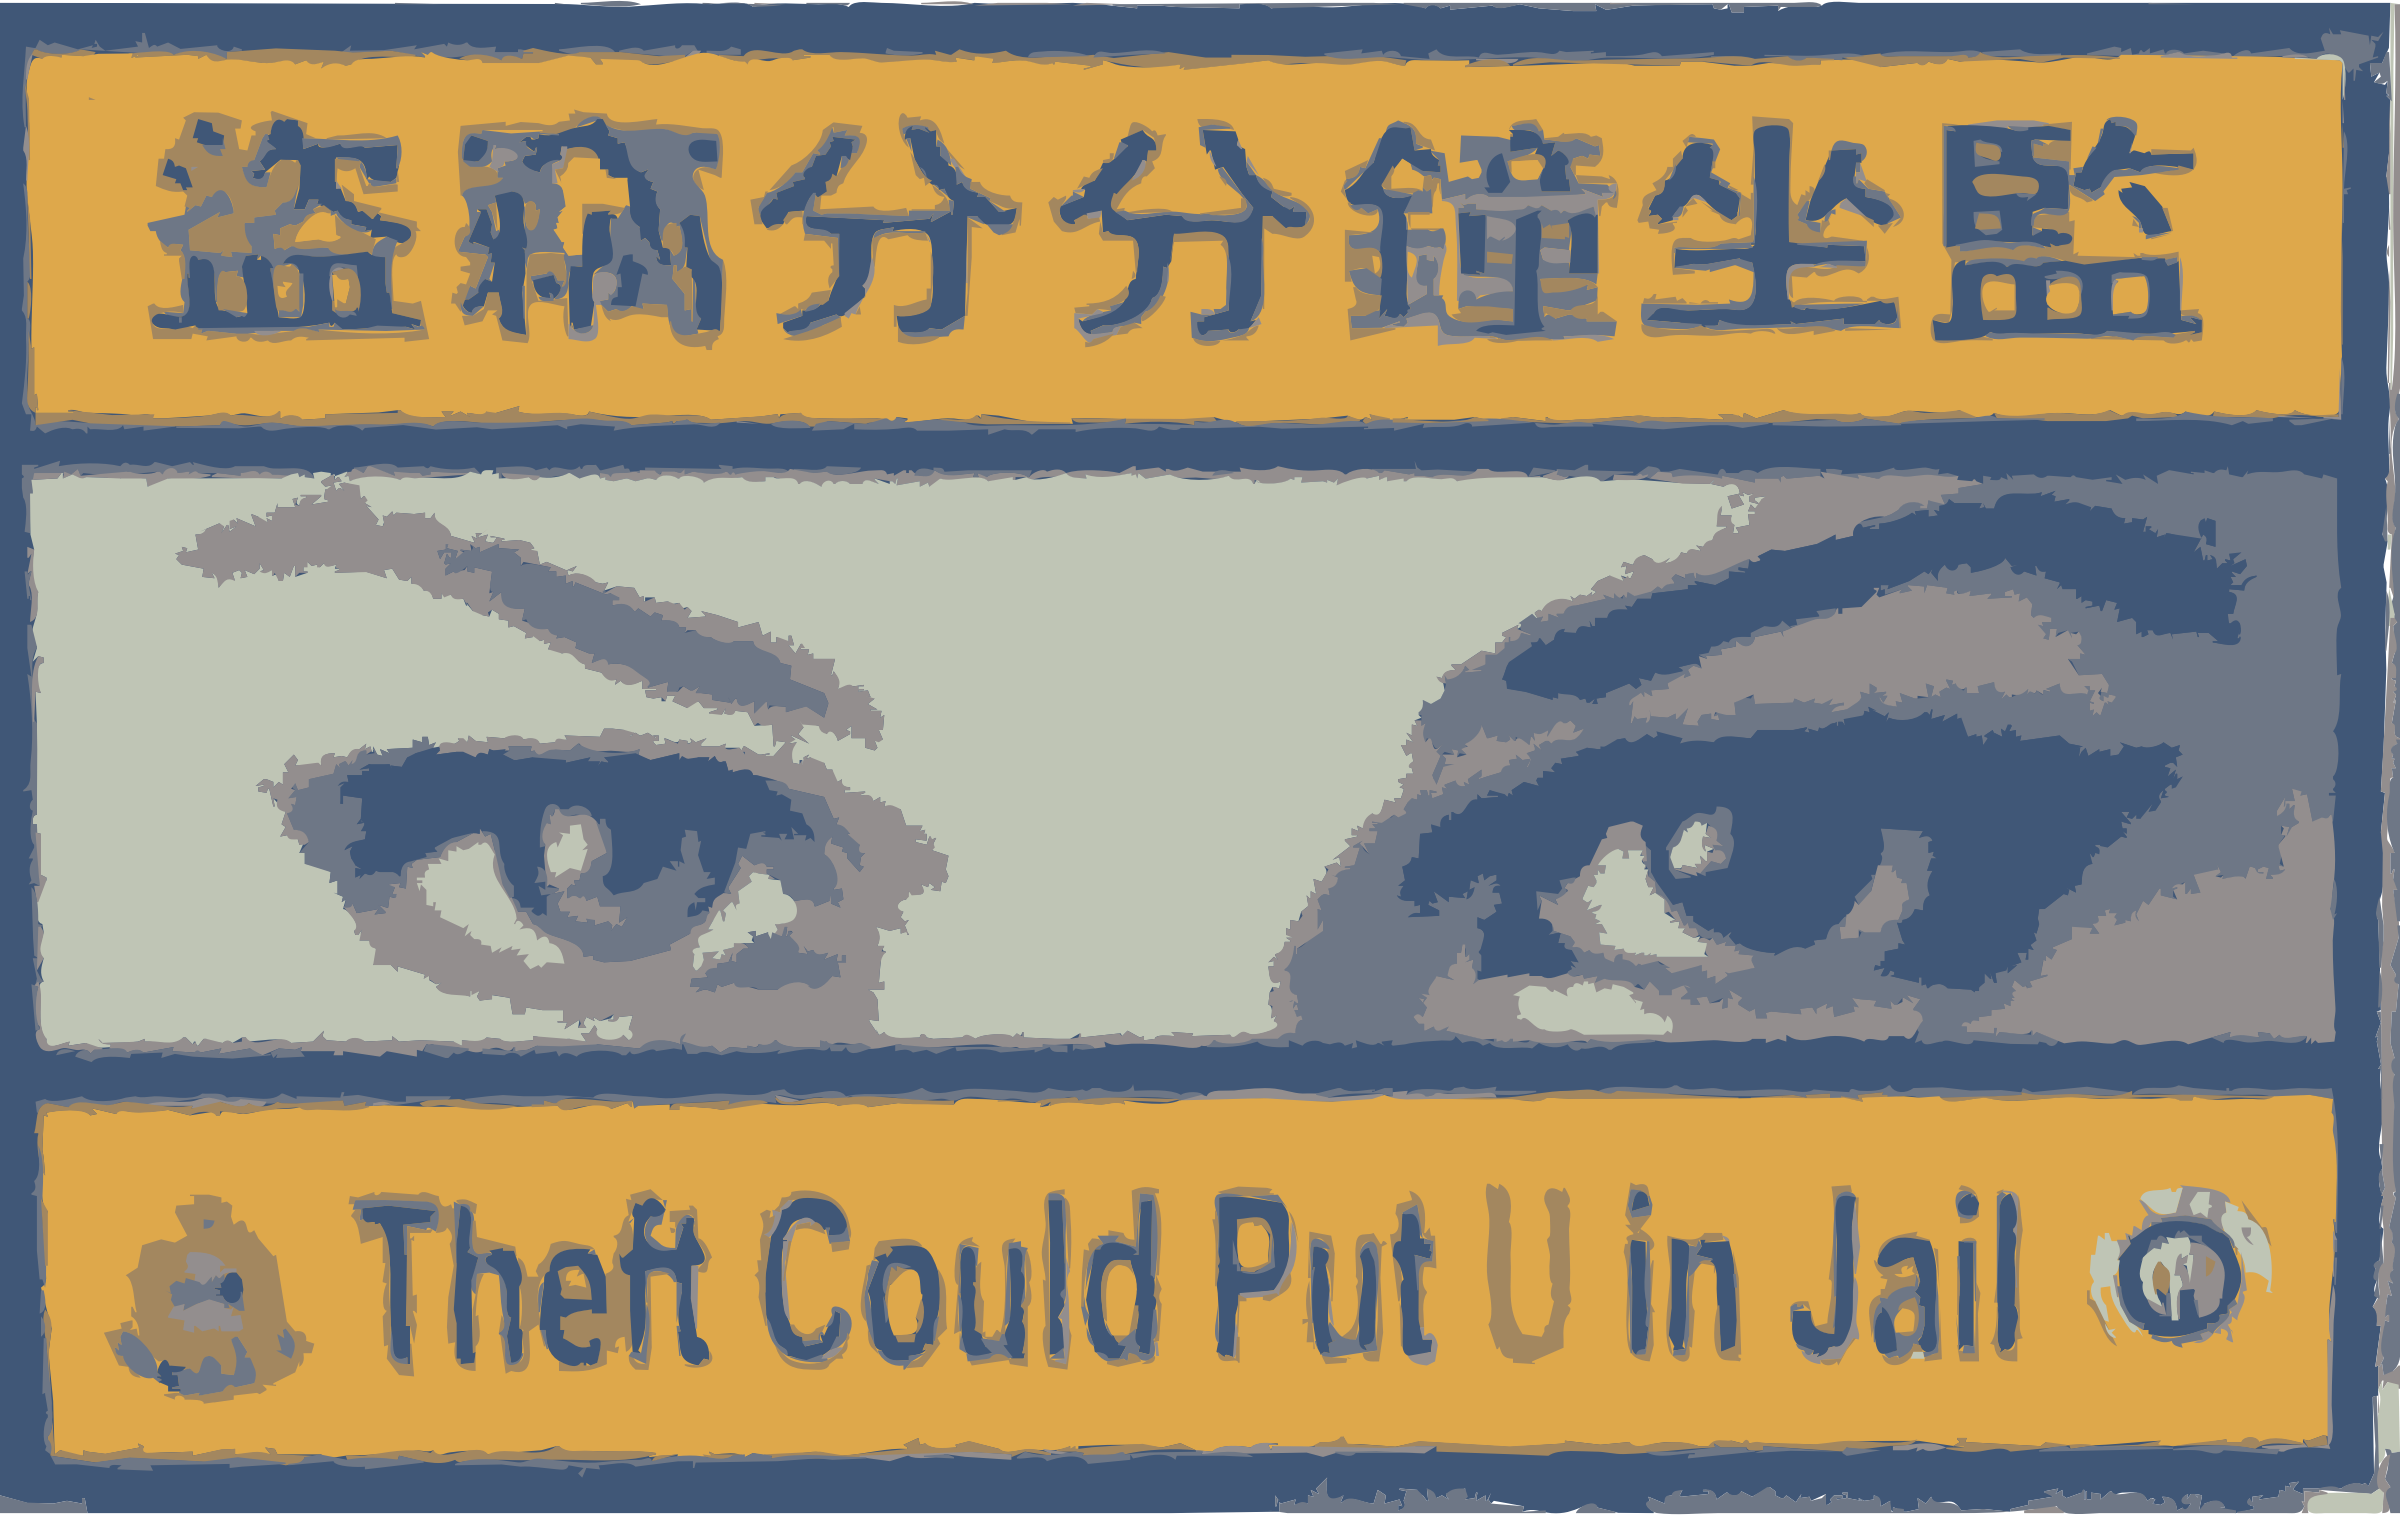 Theft is serious (Chinese) by rejon